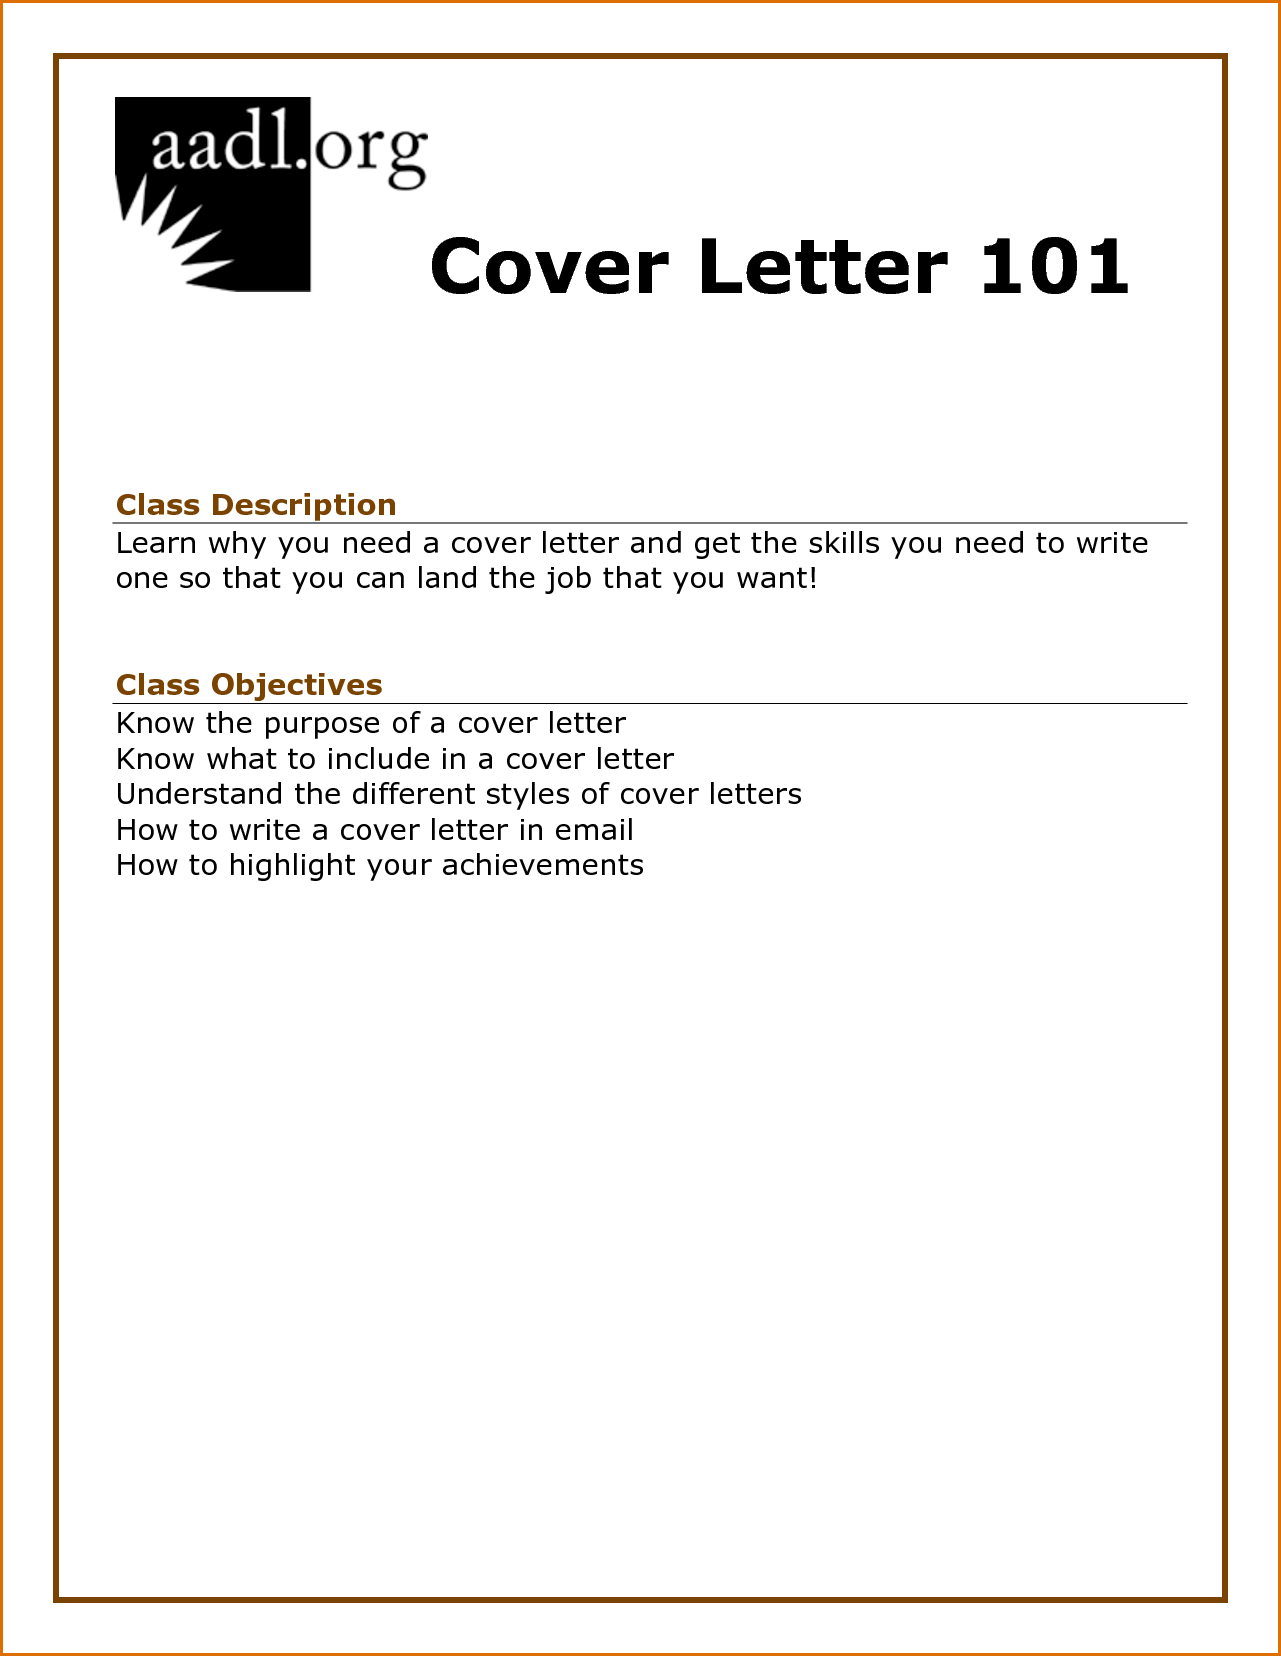 Explore Cover Letter Resume, Cover Letters, And More!